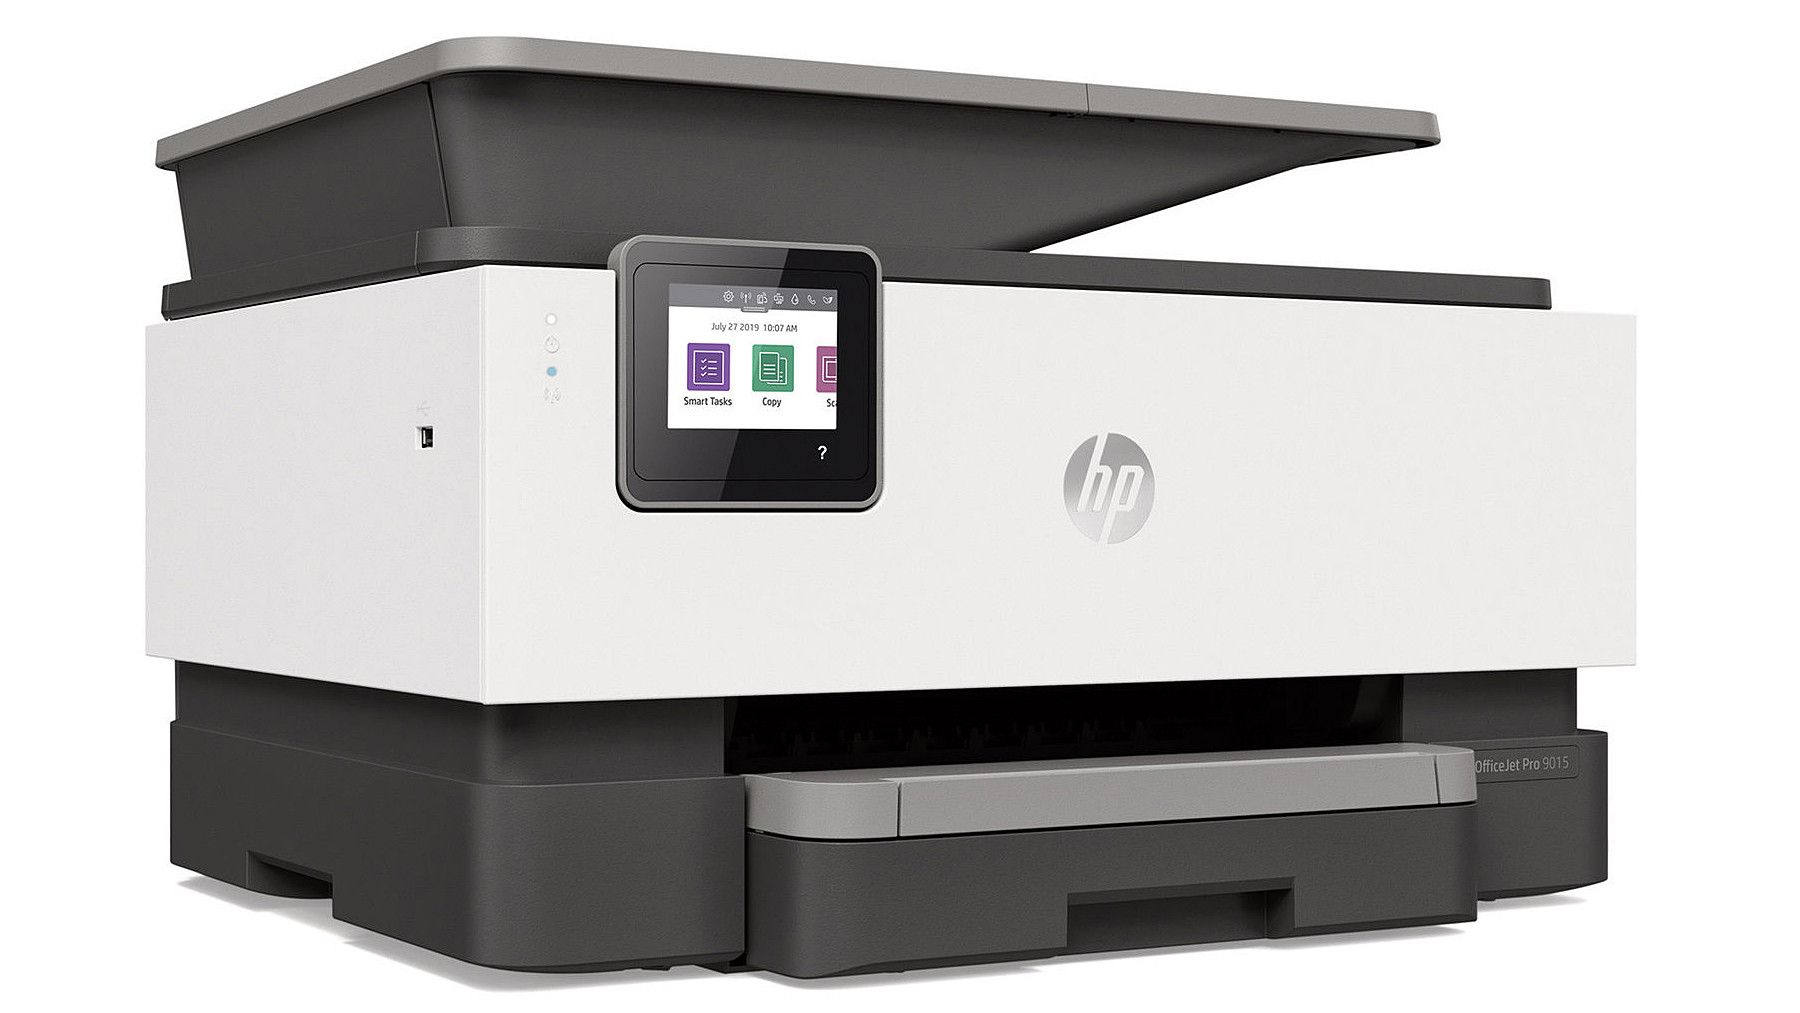 Hp Officejet Pro 9015 All In One Printer Review Hp Officejet Hp Officejet Pro Printer Scanner